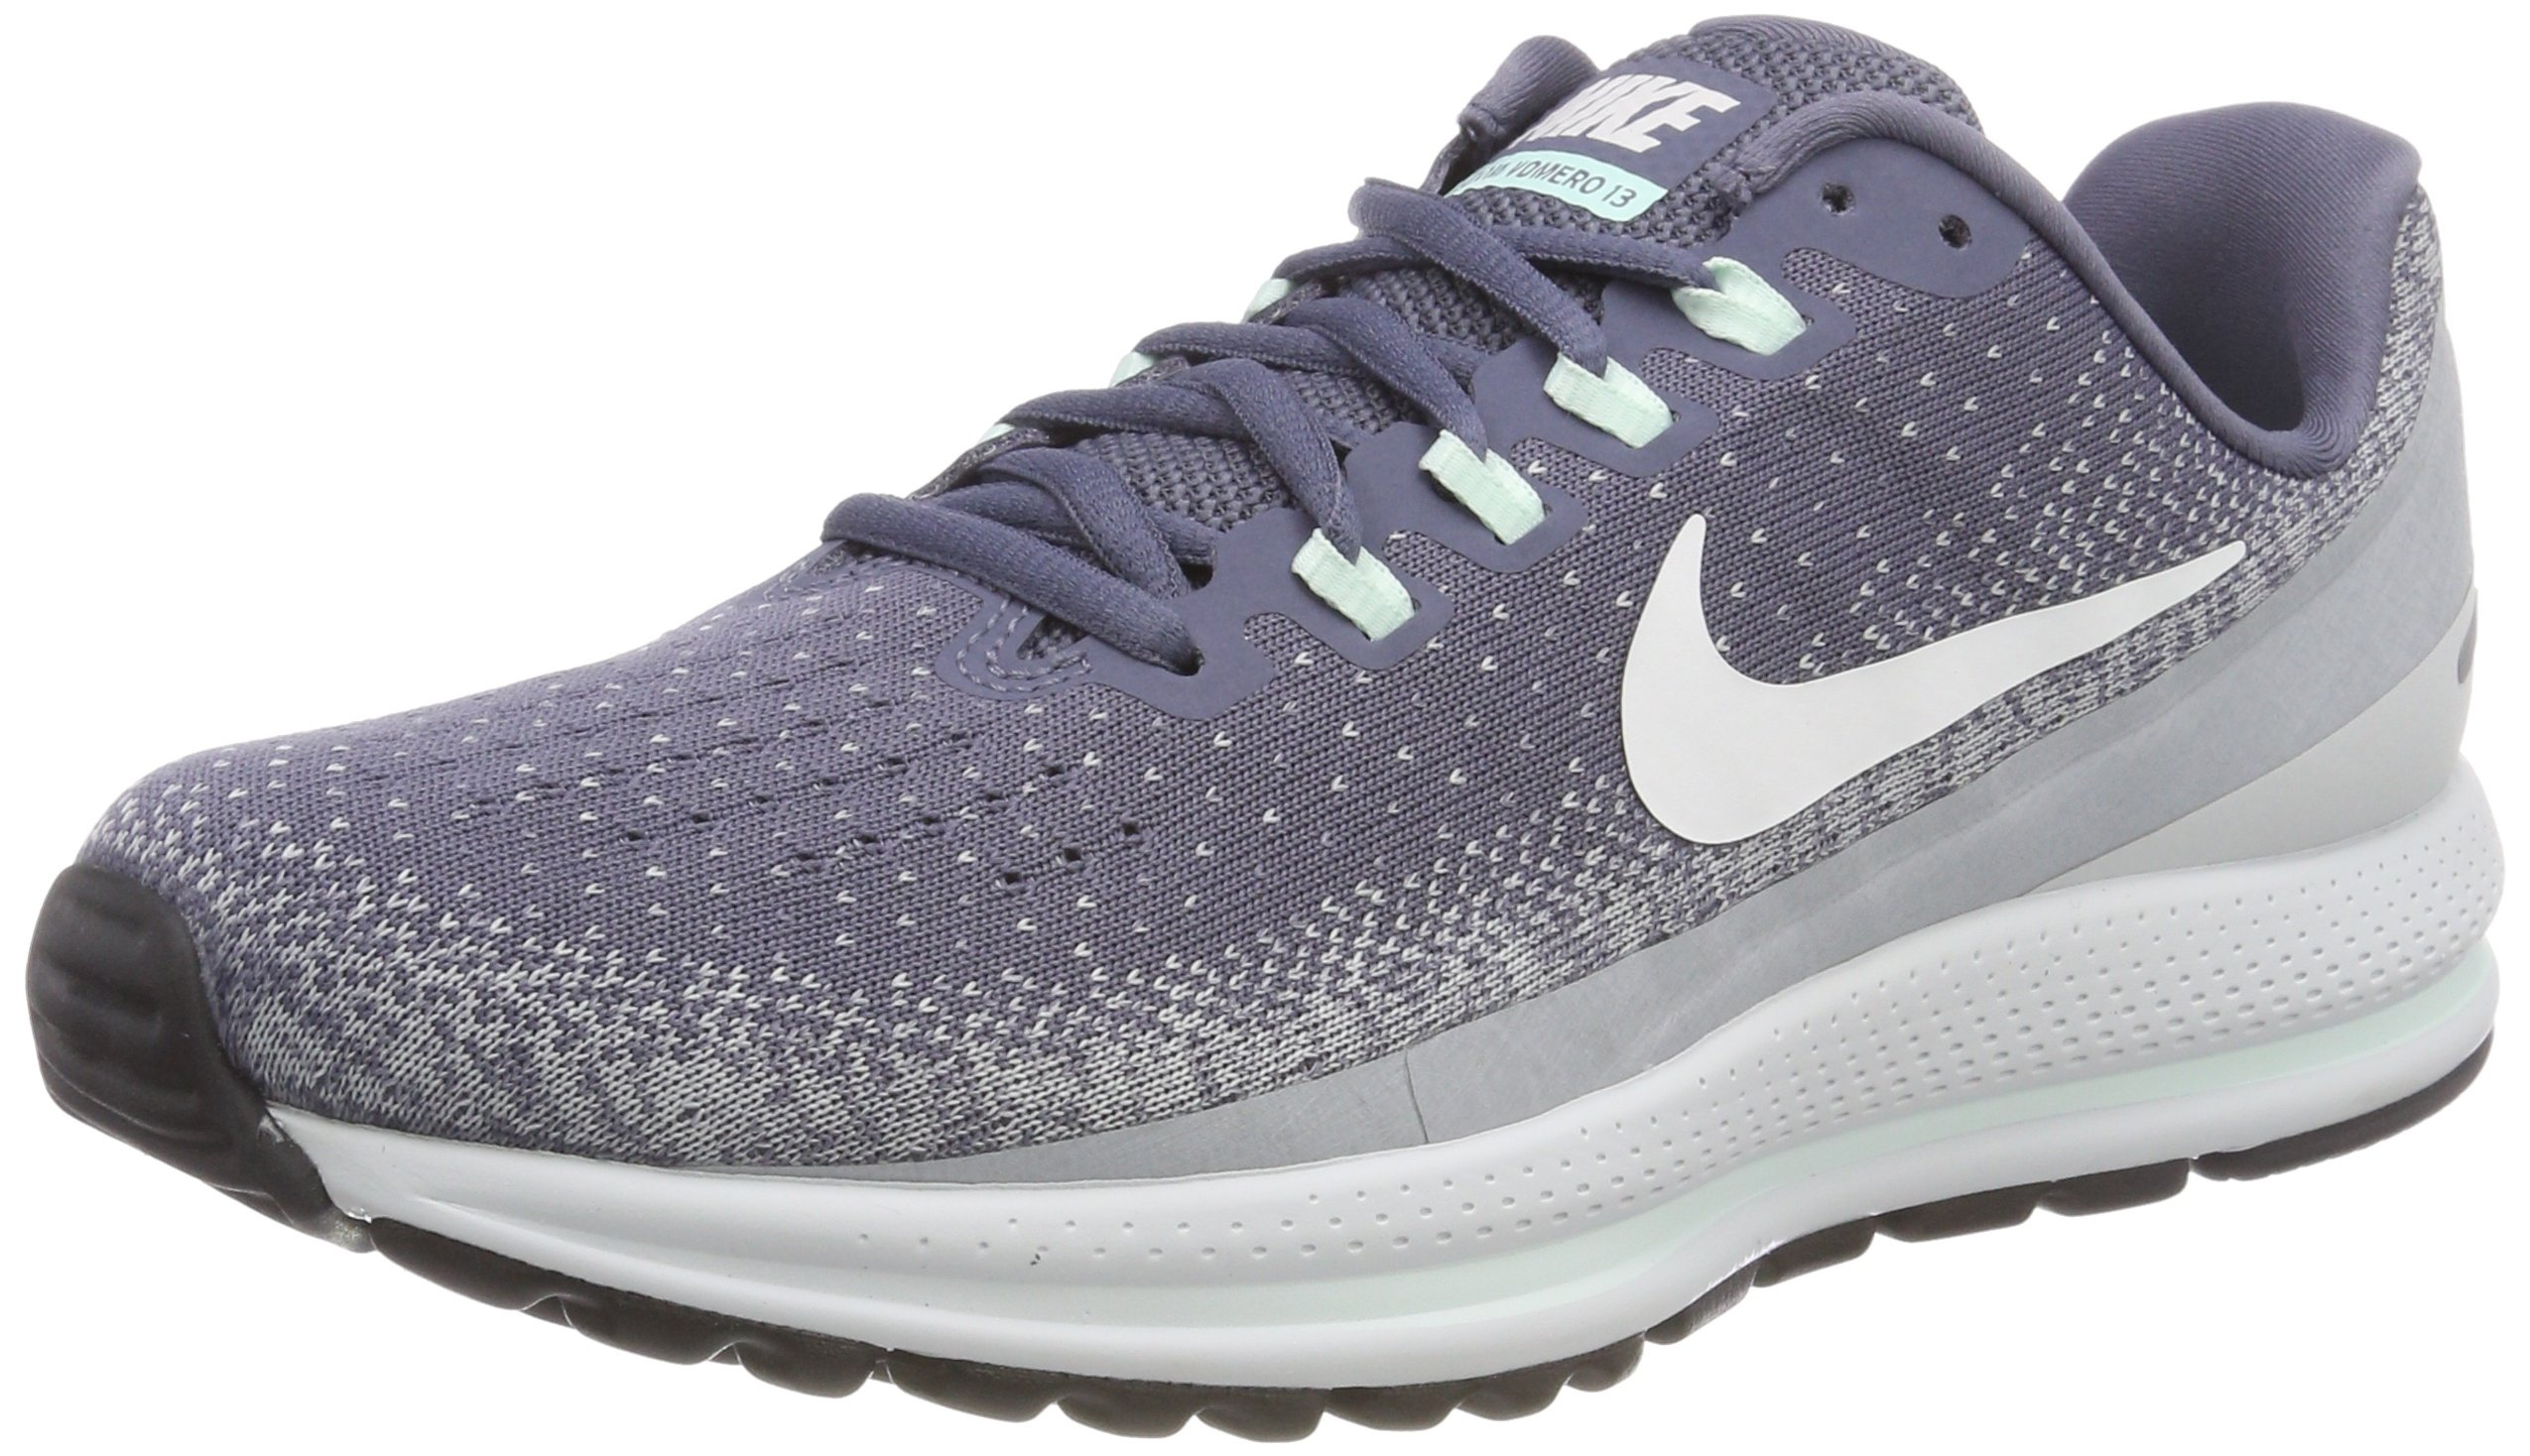 Nike Women's Air Zoom Vomero 13 Running Shoe nk922909 002 (5.5 B(M) US), Light Carbon/Summit White